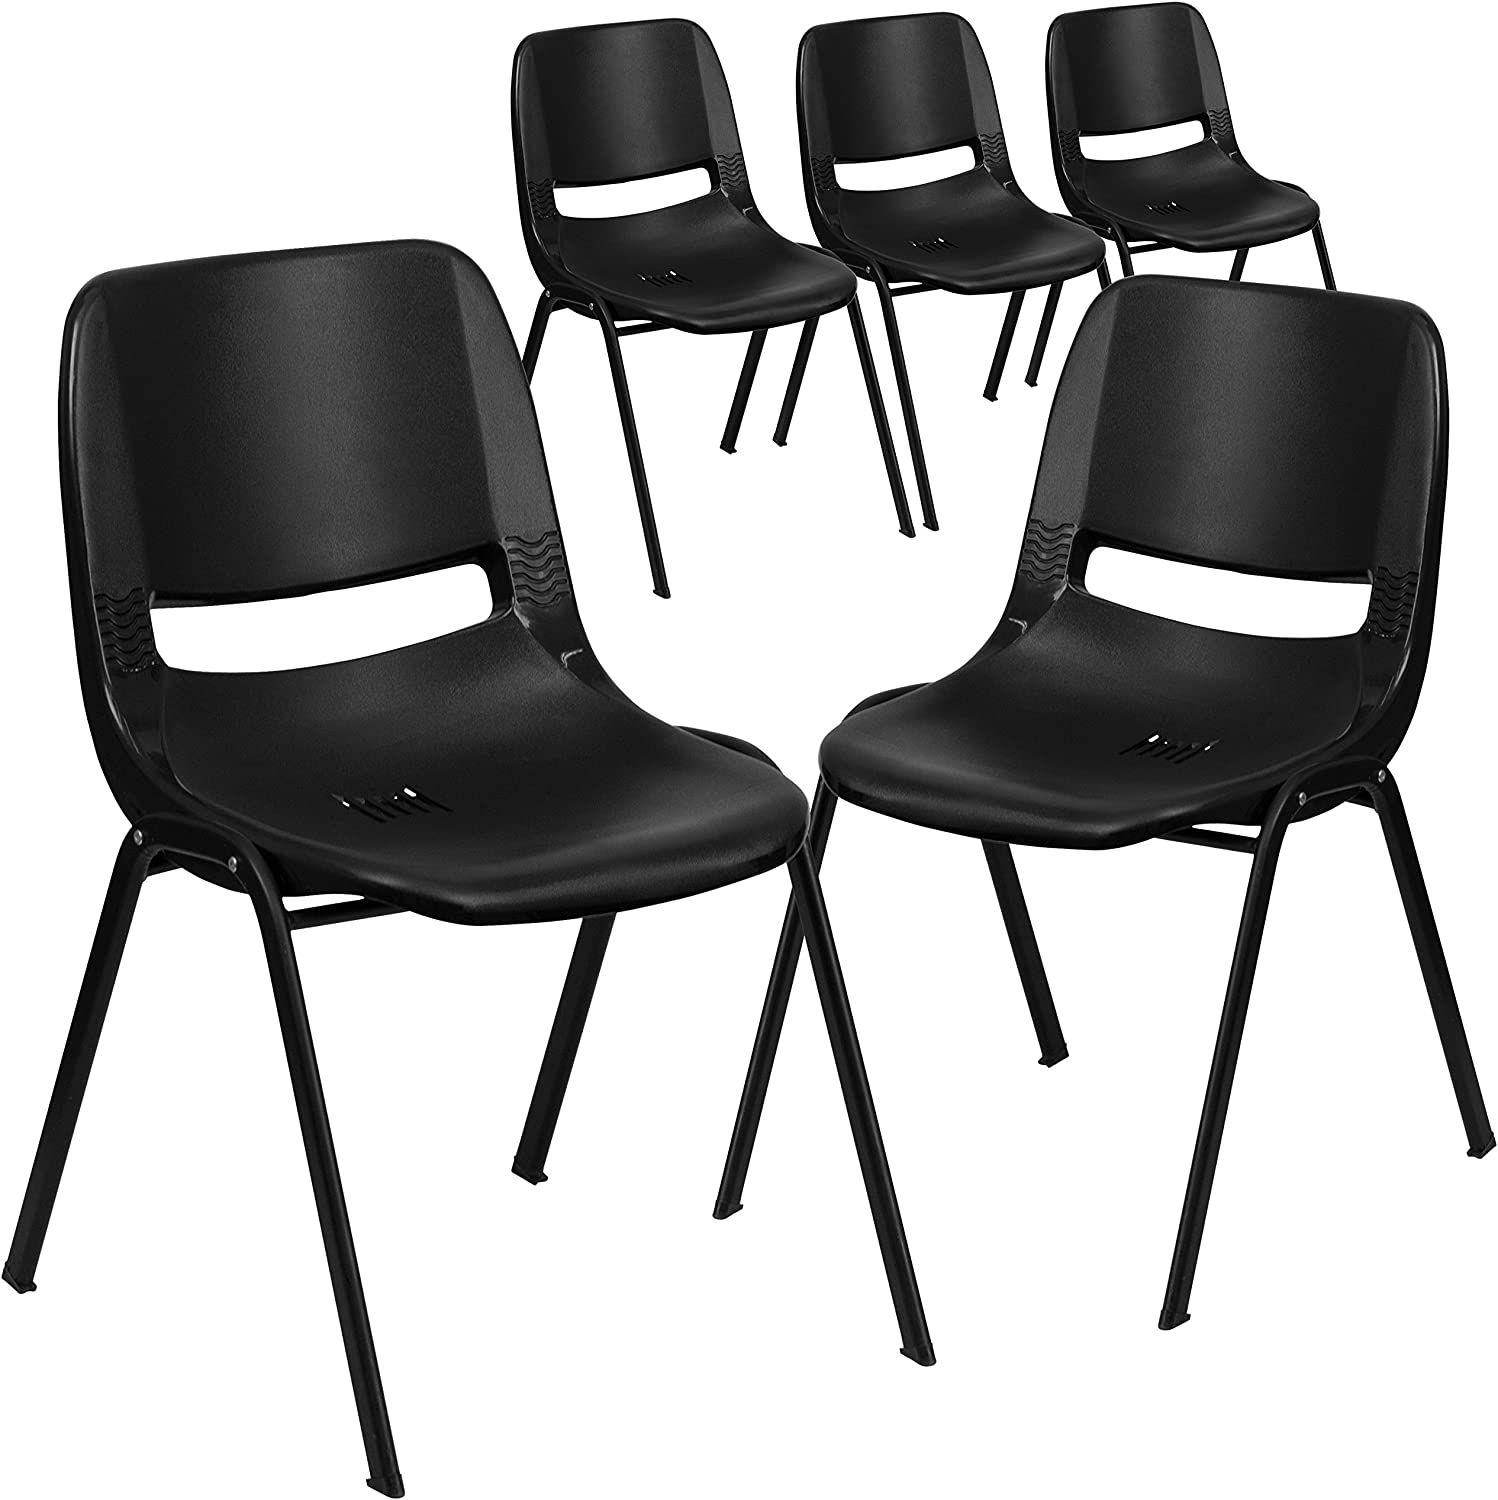 Flash Furniture 5 Pk. HERCULES Series 661 lb. Capacity Black Ergonomic Shell Stack Chair with Black Frame and 16 Seat Height